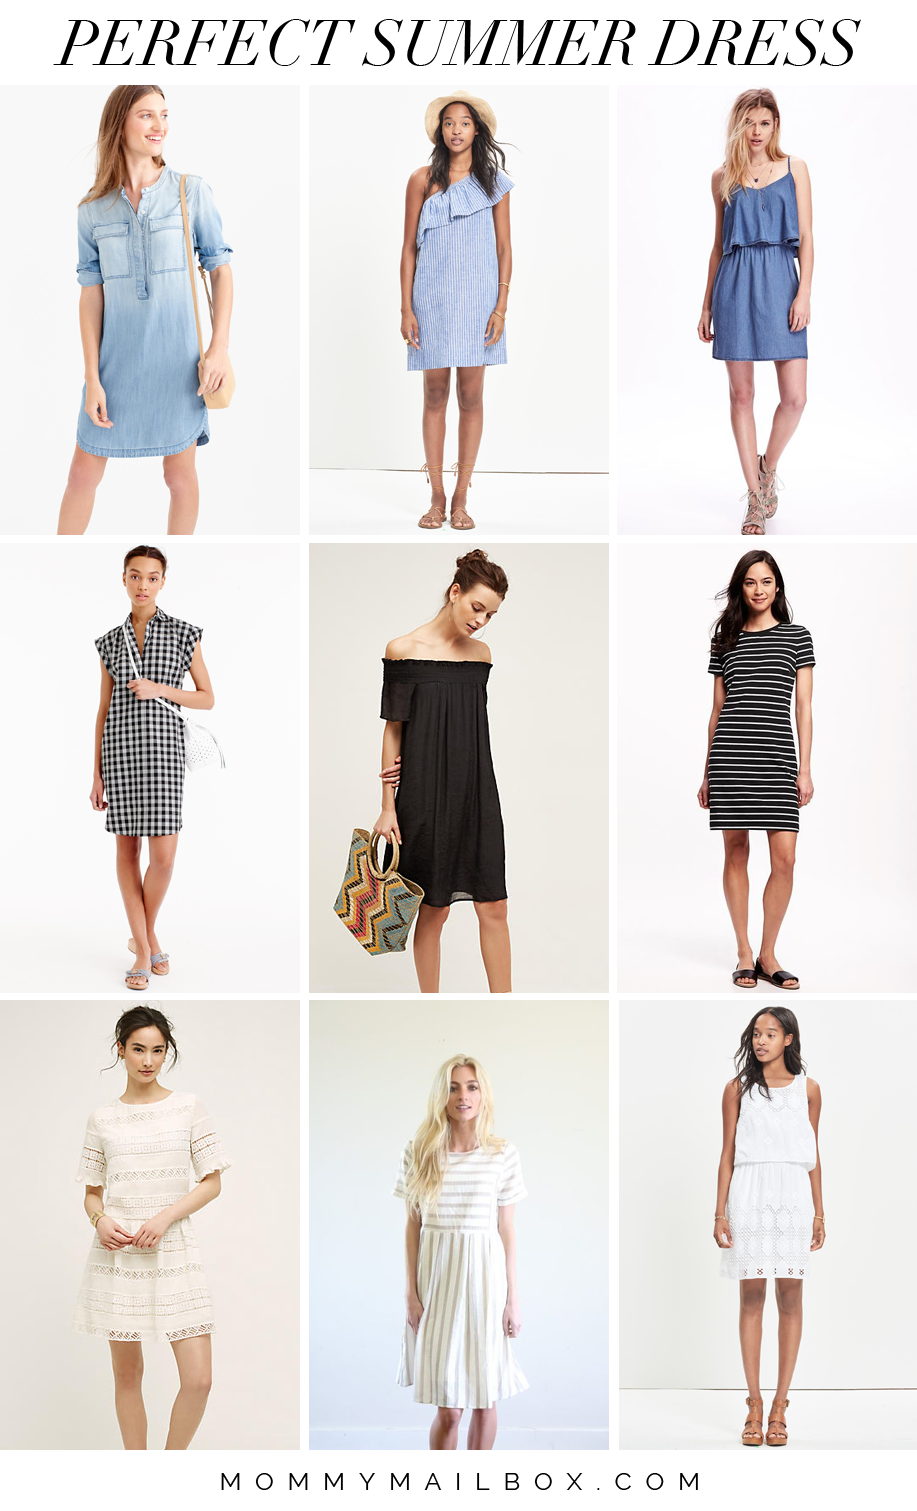 Picking the perfect summer dress